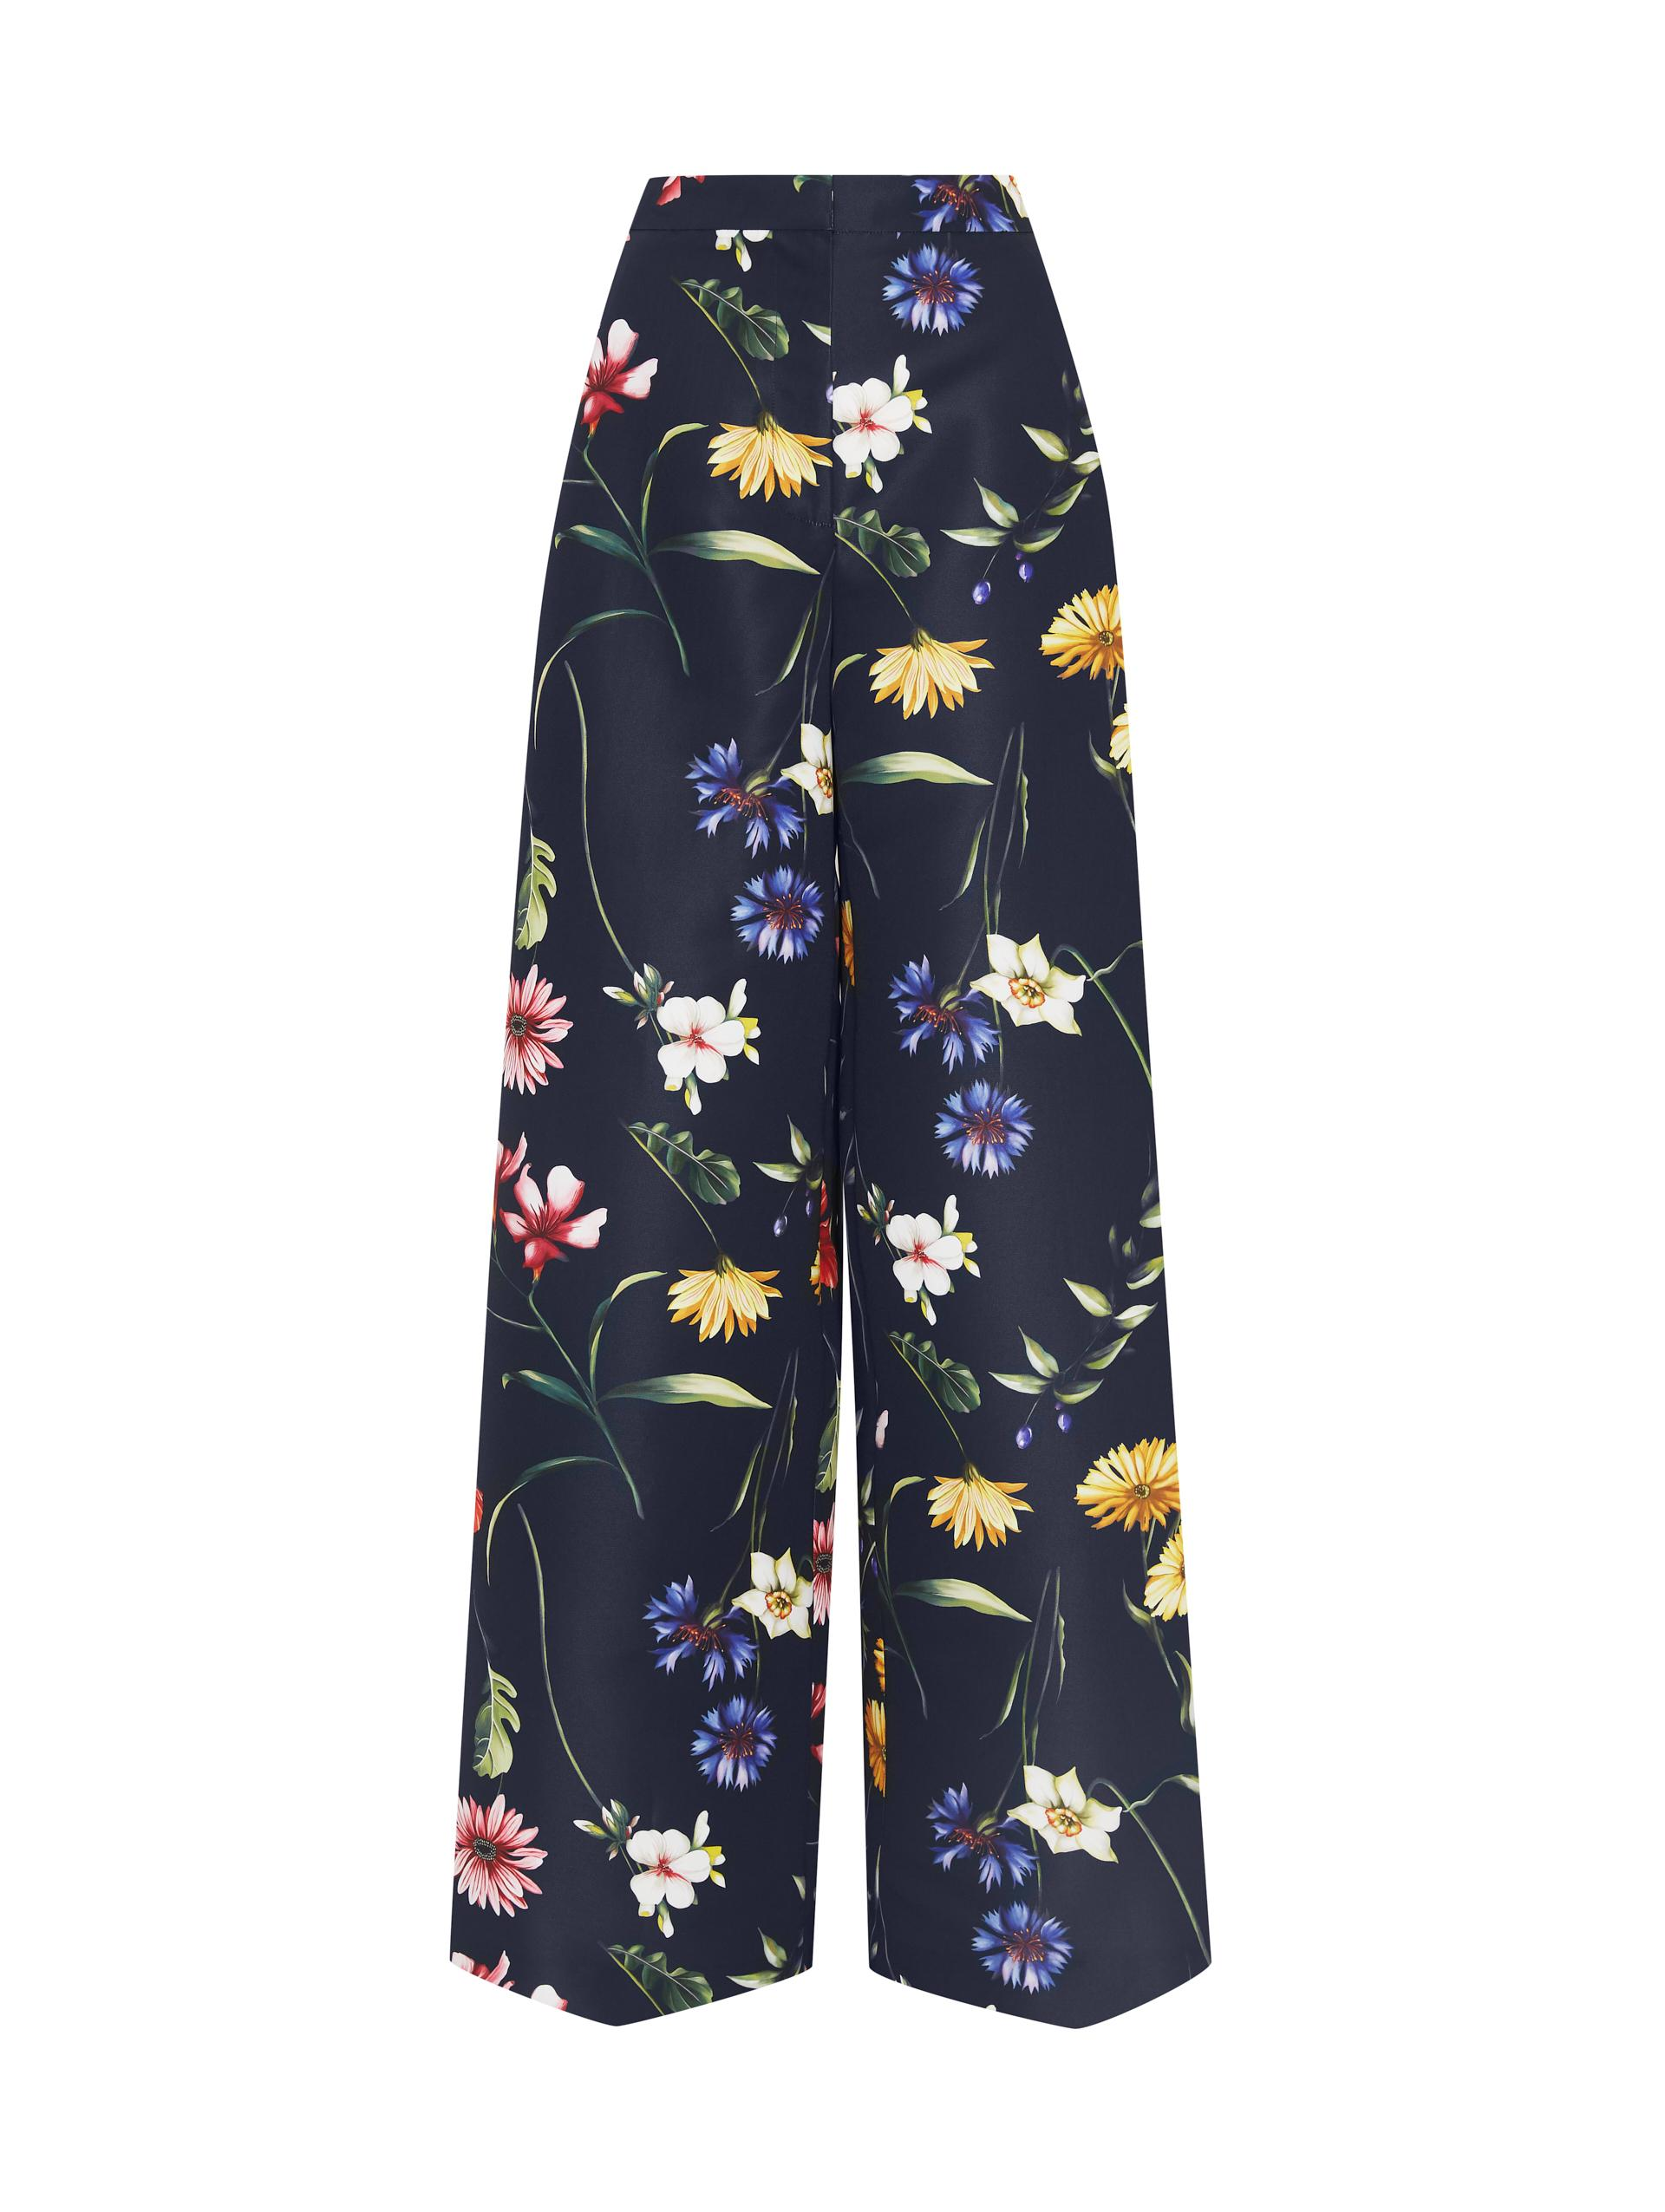 NAVY FIORE WIDE LEG PANT 3